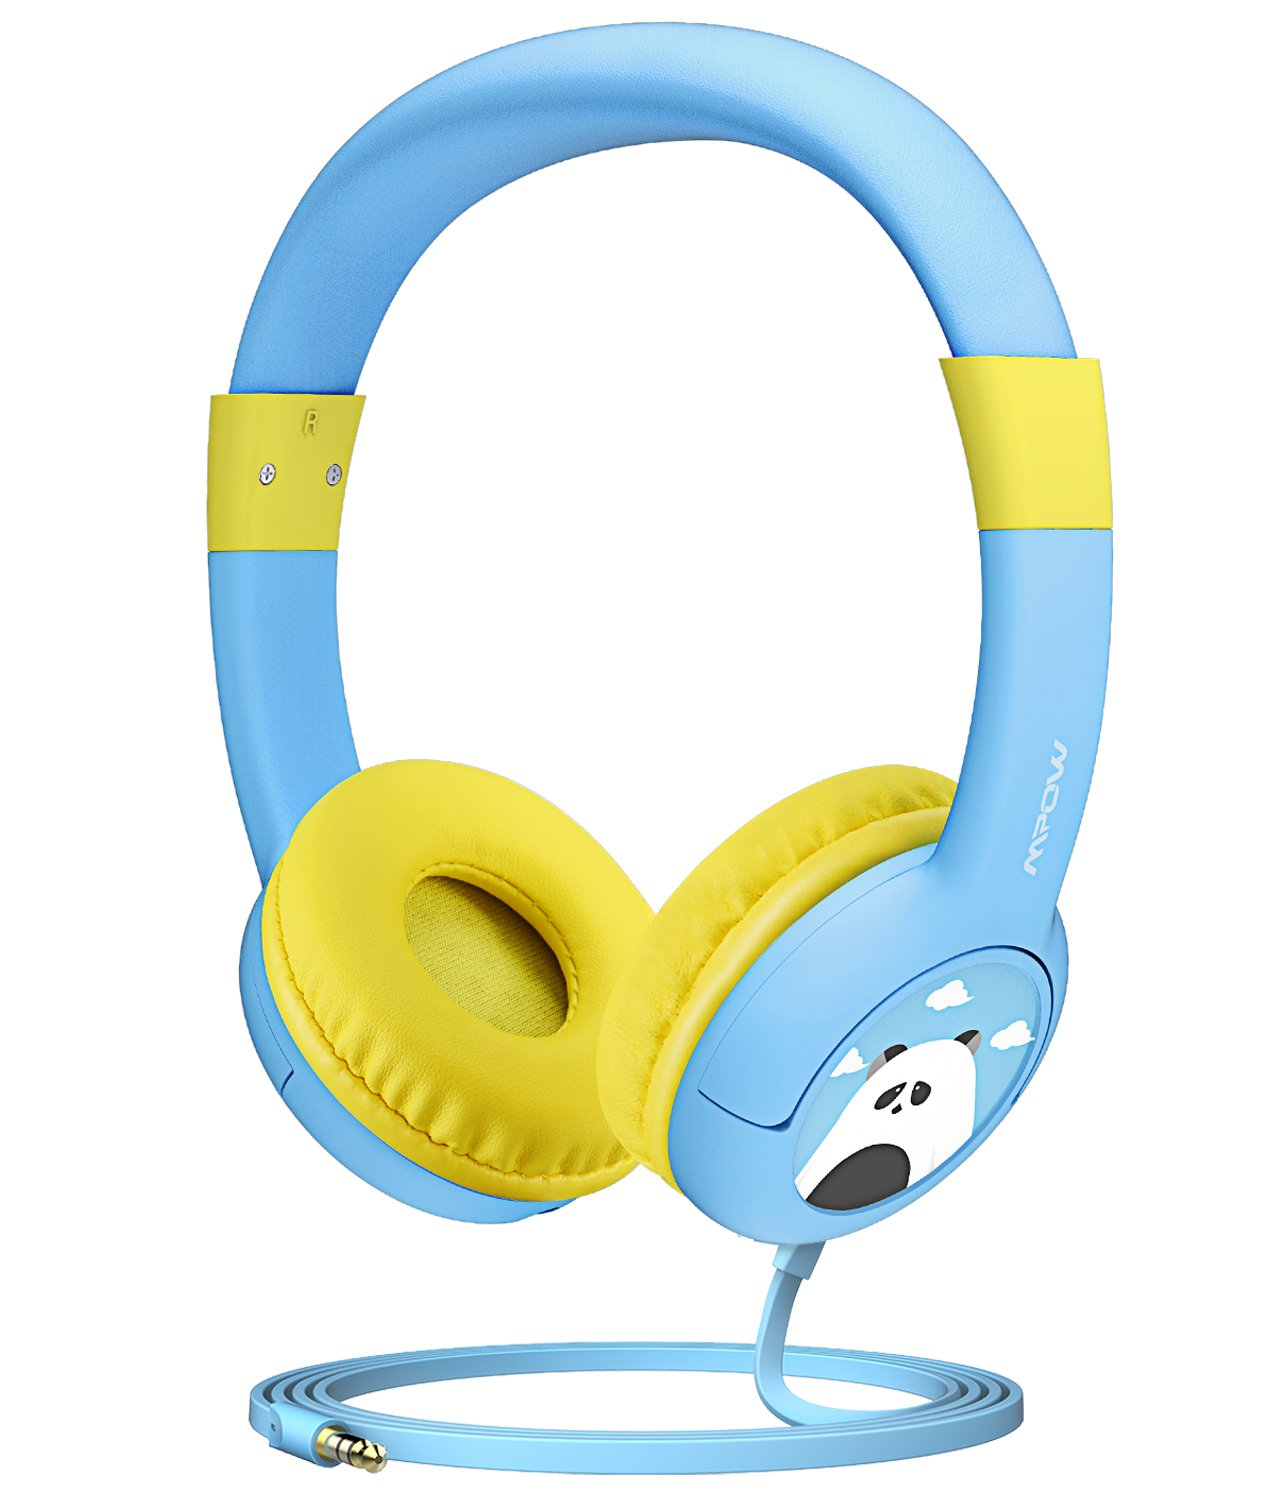 Mpow Kids Headphones with 85dB Volume Limited Hearing Protection & Music Sharing Function, Kids Friendly Safe Food Grade Material, Tangle-Free Cord, Wired On-Ear Headphones for Children Toddler Baby by Mpow